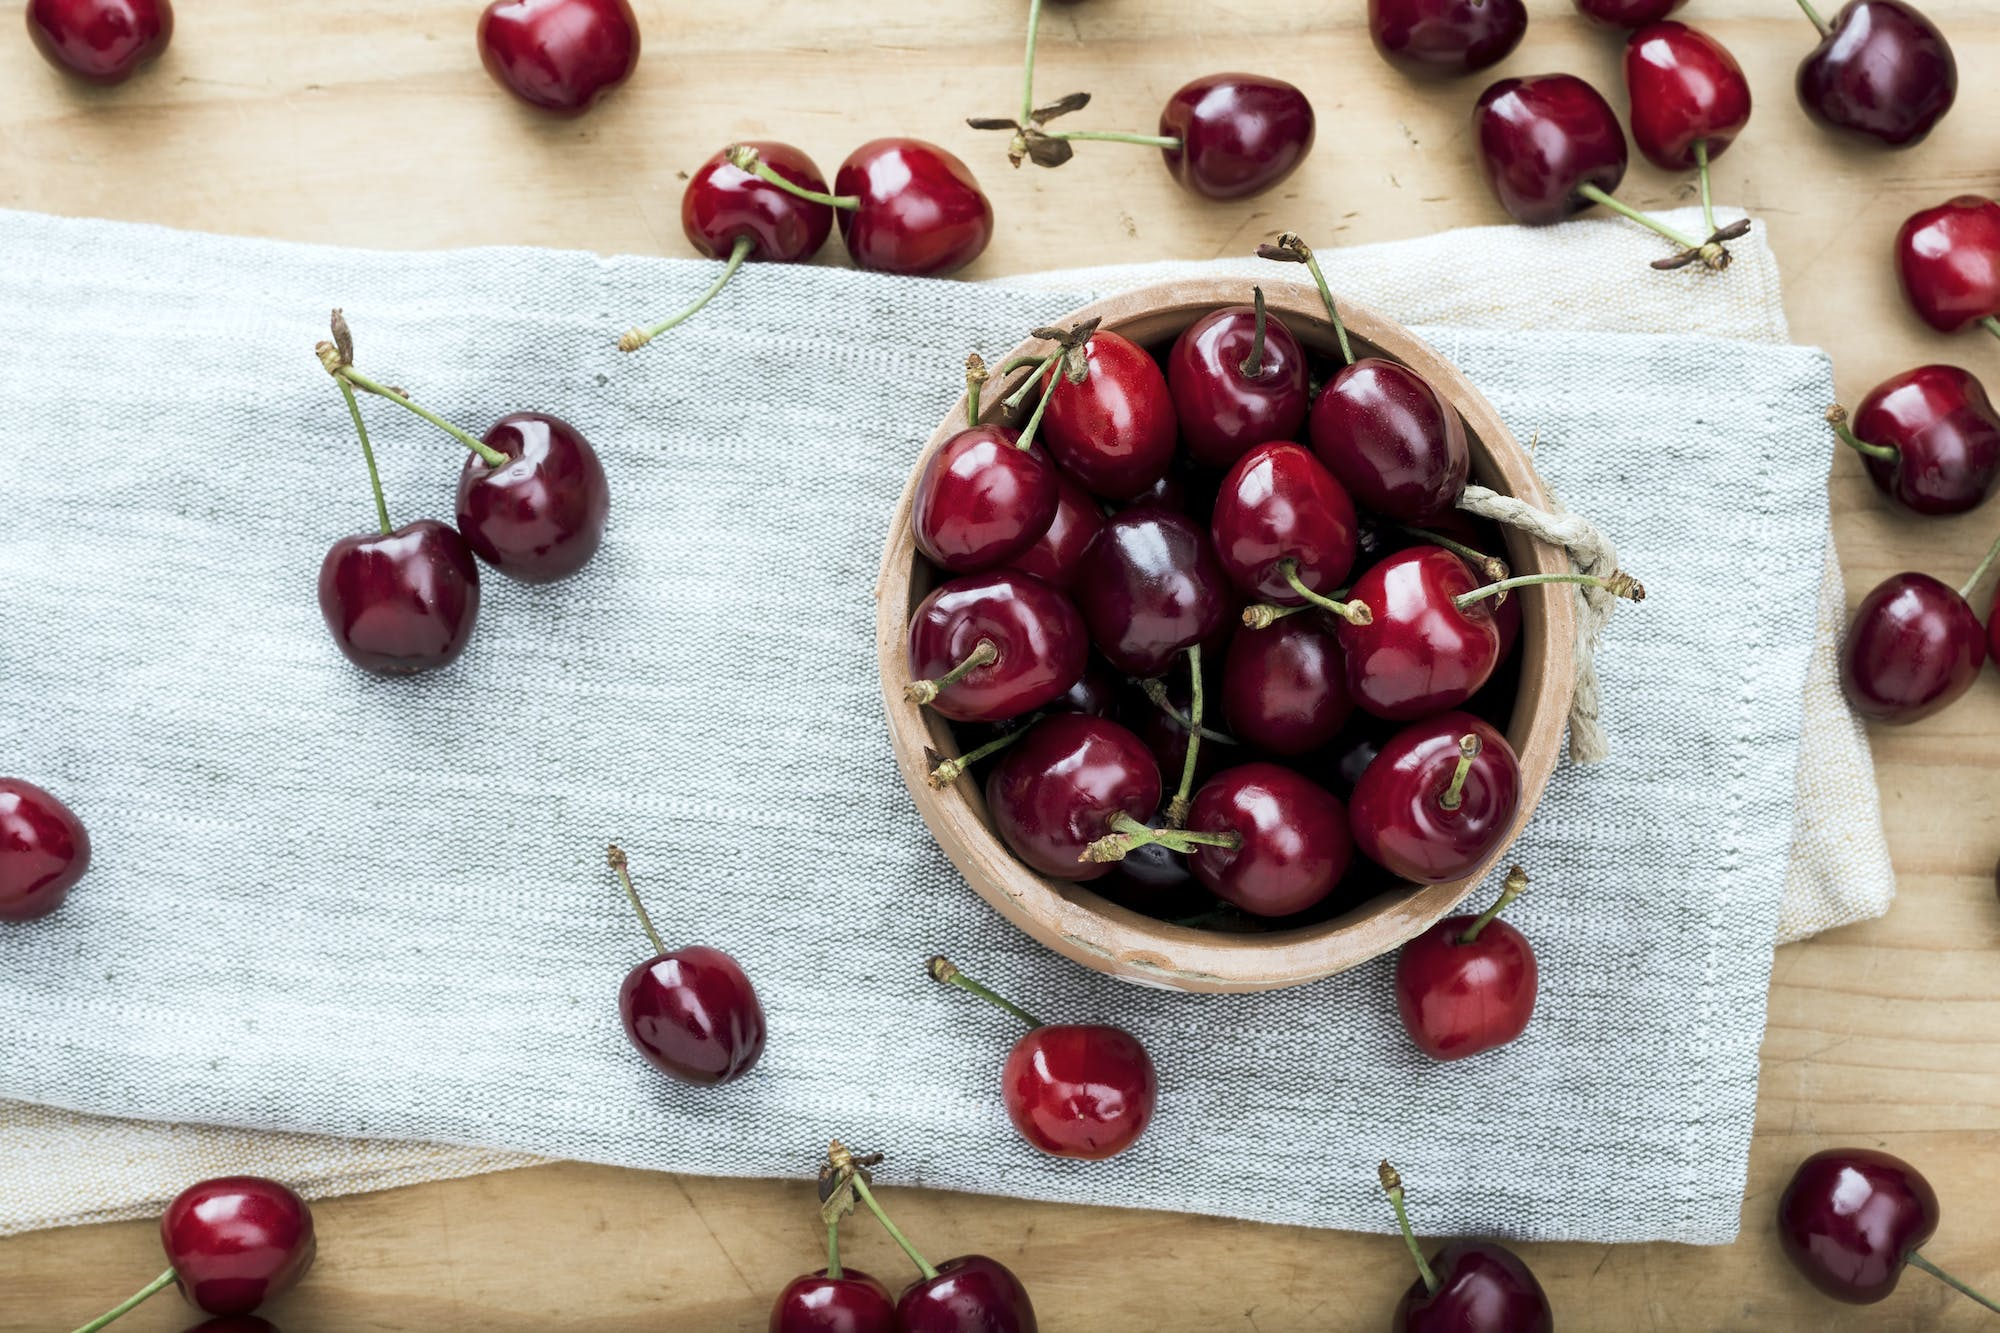 Promising New Research on Tart Cherry and Endurance